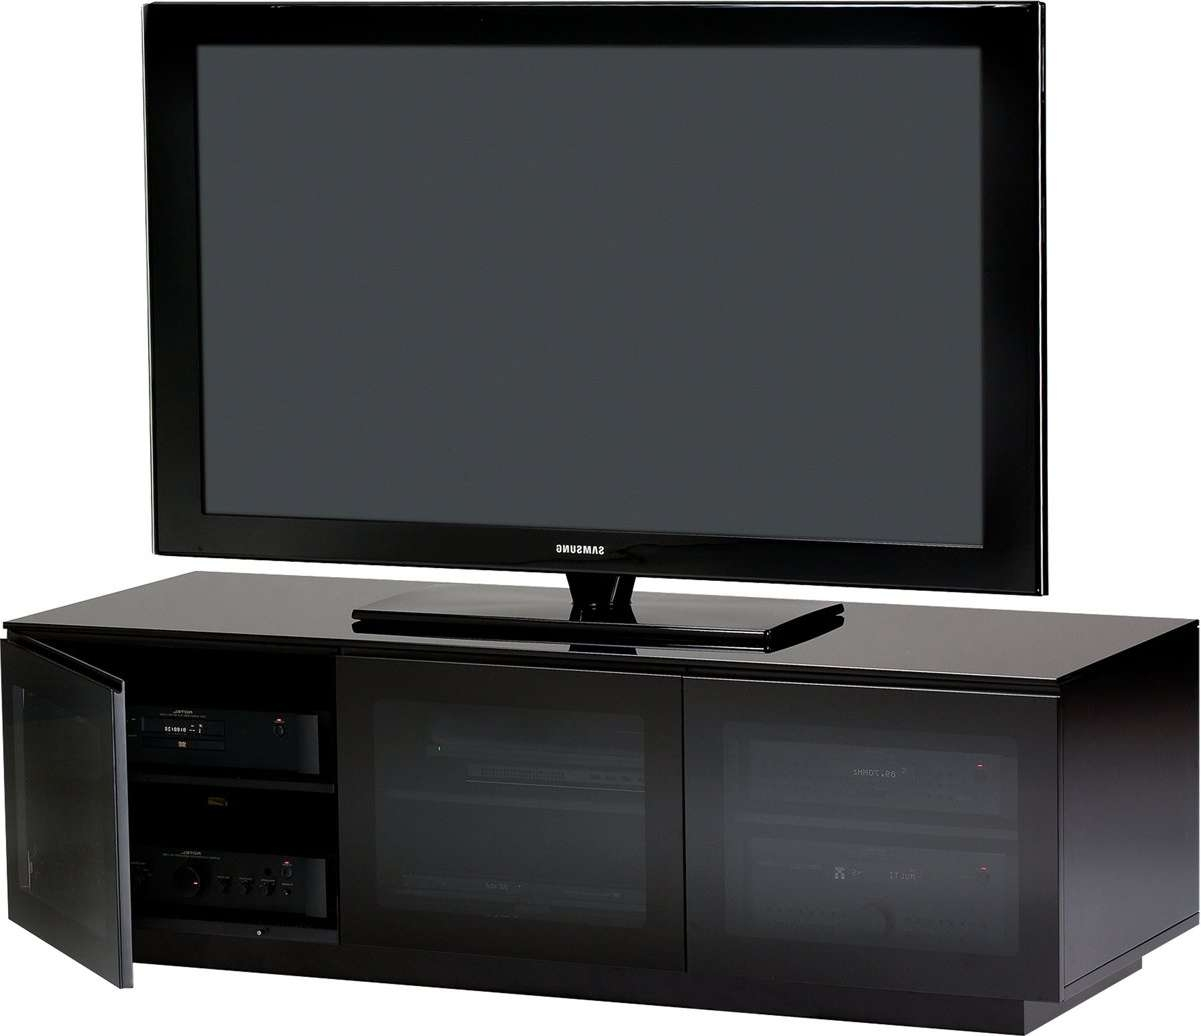 Bdi Mirage 8227 Tv Stands Throughout Glass Tv Cabinets (View 1 of 20)